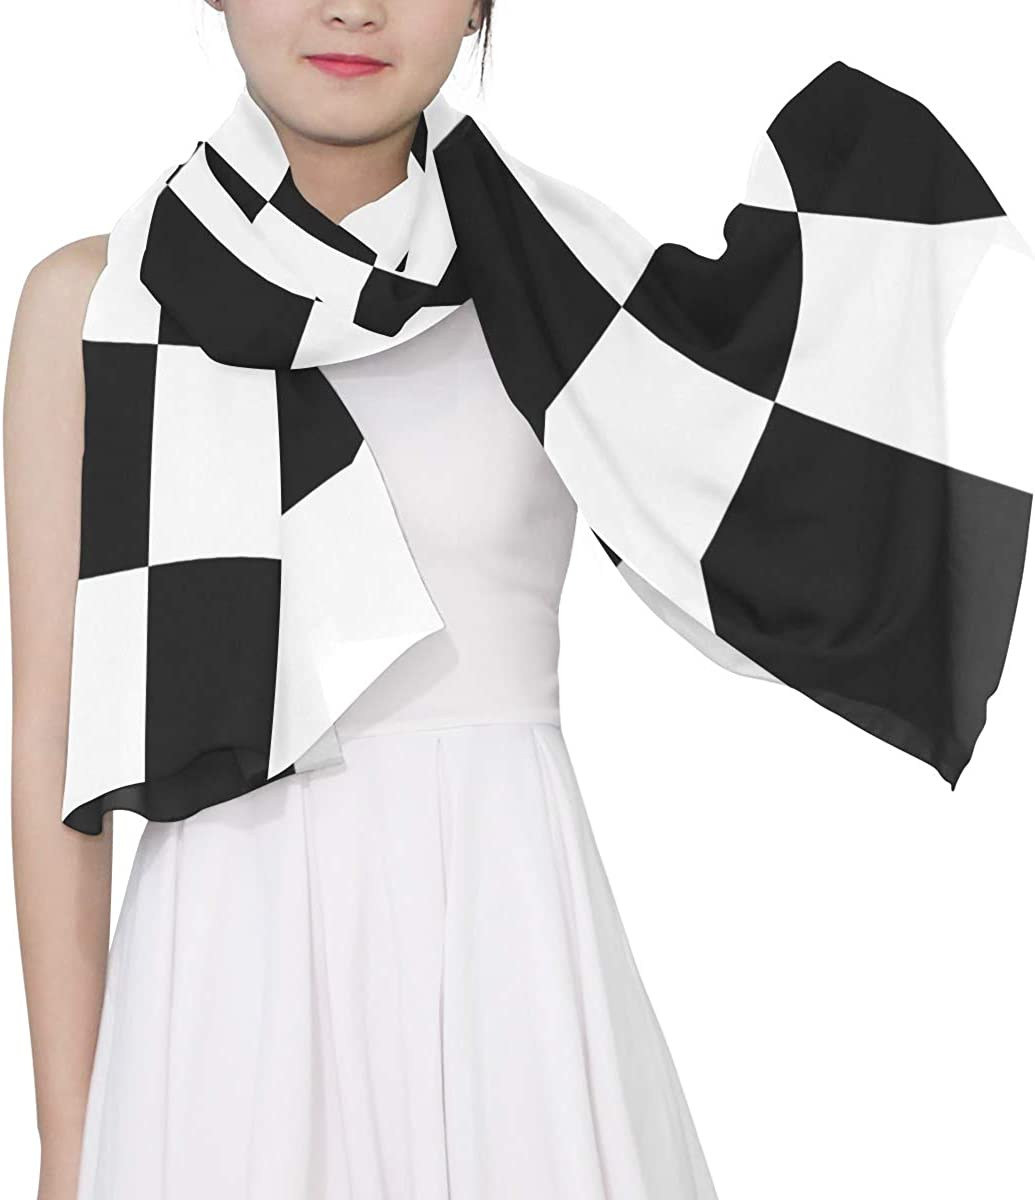 Black-and-white Lattices Unique Fashion Scarf For Women Lightweight Fashion Fall Winter Print Scarves Shawl Wraps Gifts For Early Spring